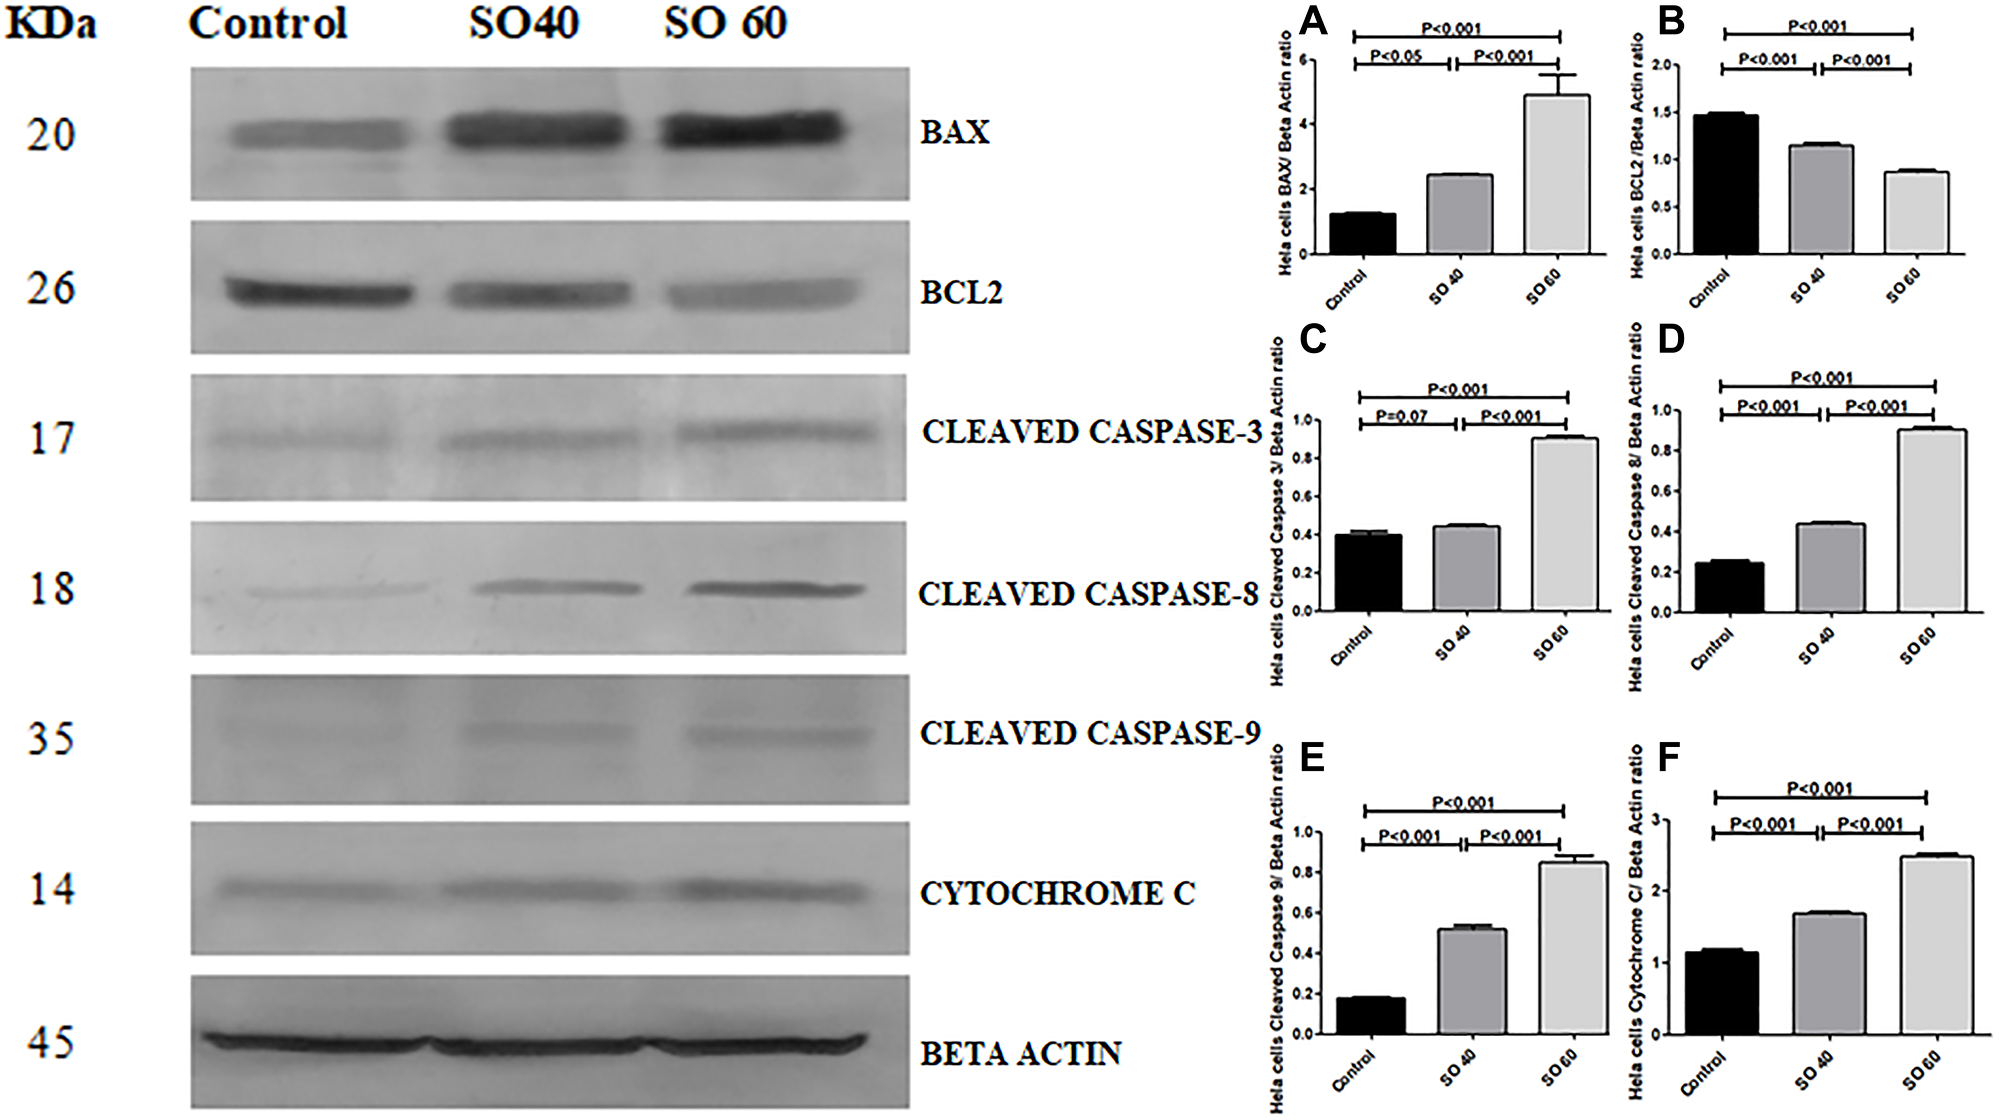 Expression of apoptotic proteins Bax, cleaved caspase-3, cleaved caspase-8, cleaved caspase-9, cytochrome c and anti-apoptotic proteins Bcl2 in 40 mmol and 60 mmol SO treated HeLa cancer cells compared to control non-treated HeLa cells.